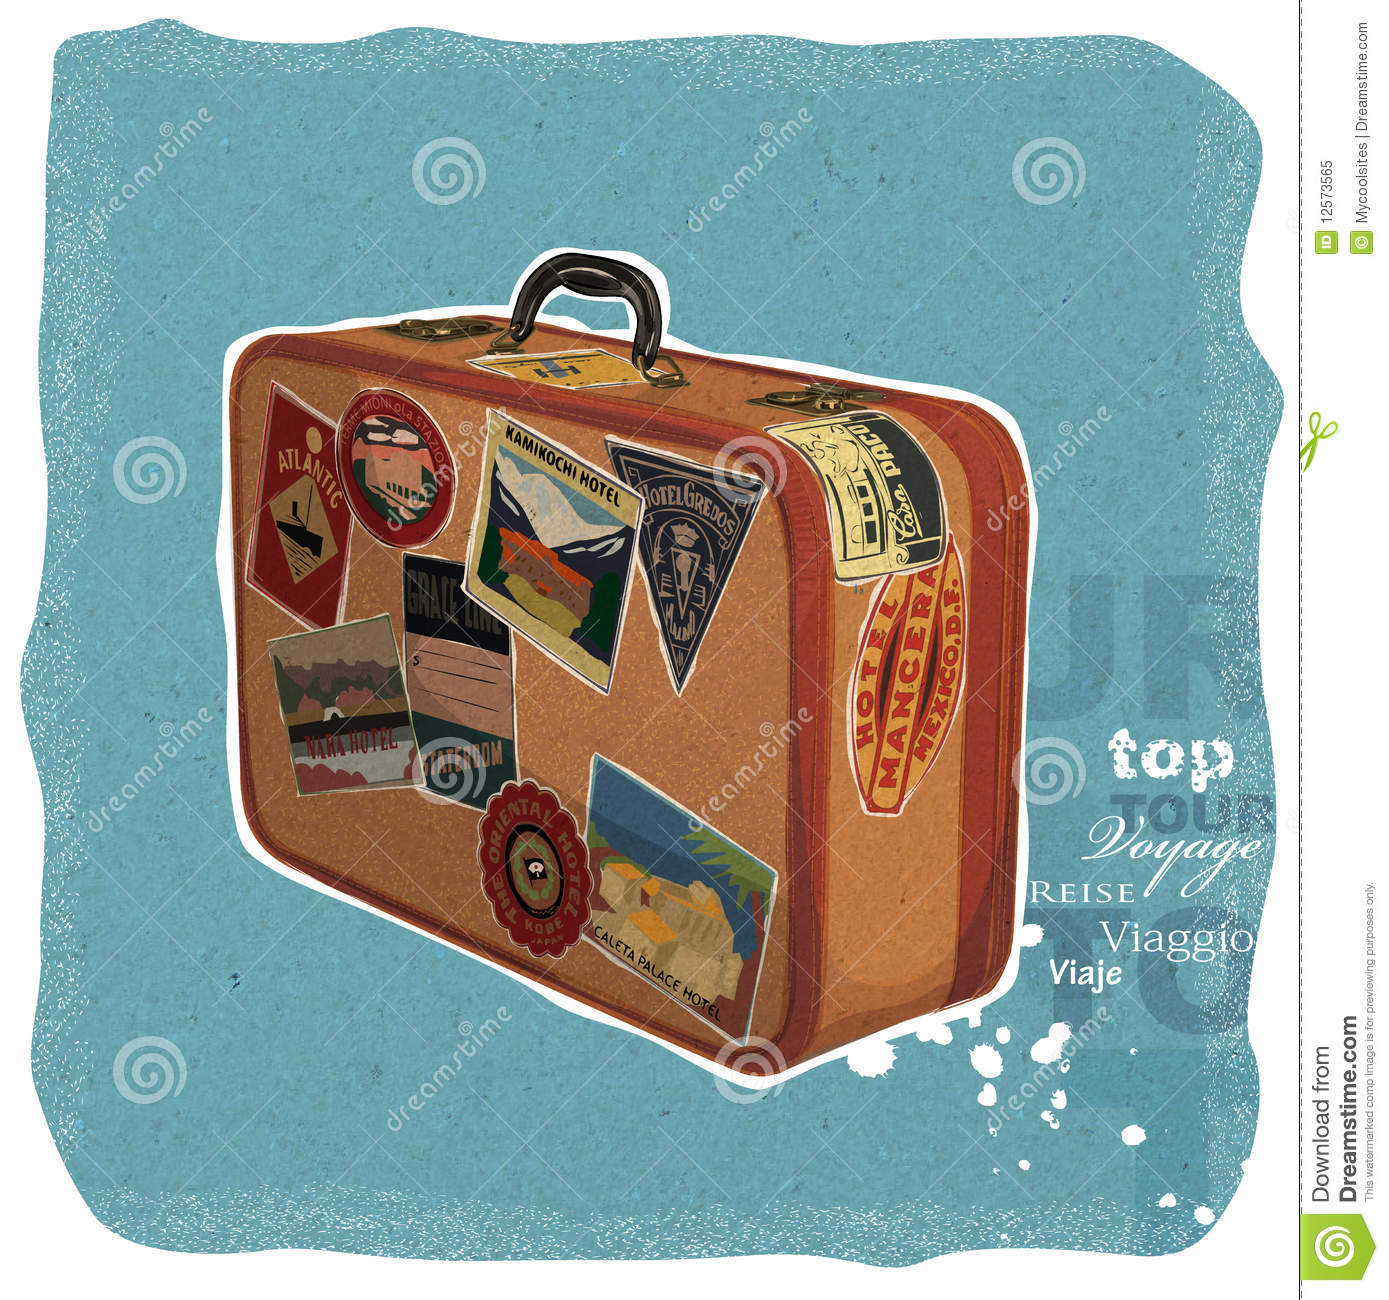 Vintage suitcase stock illustration image of luggage for The vintage suitcase